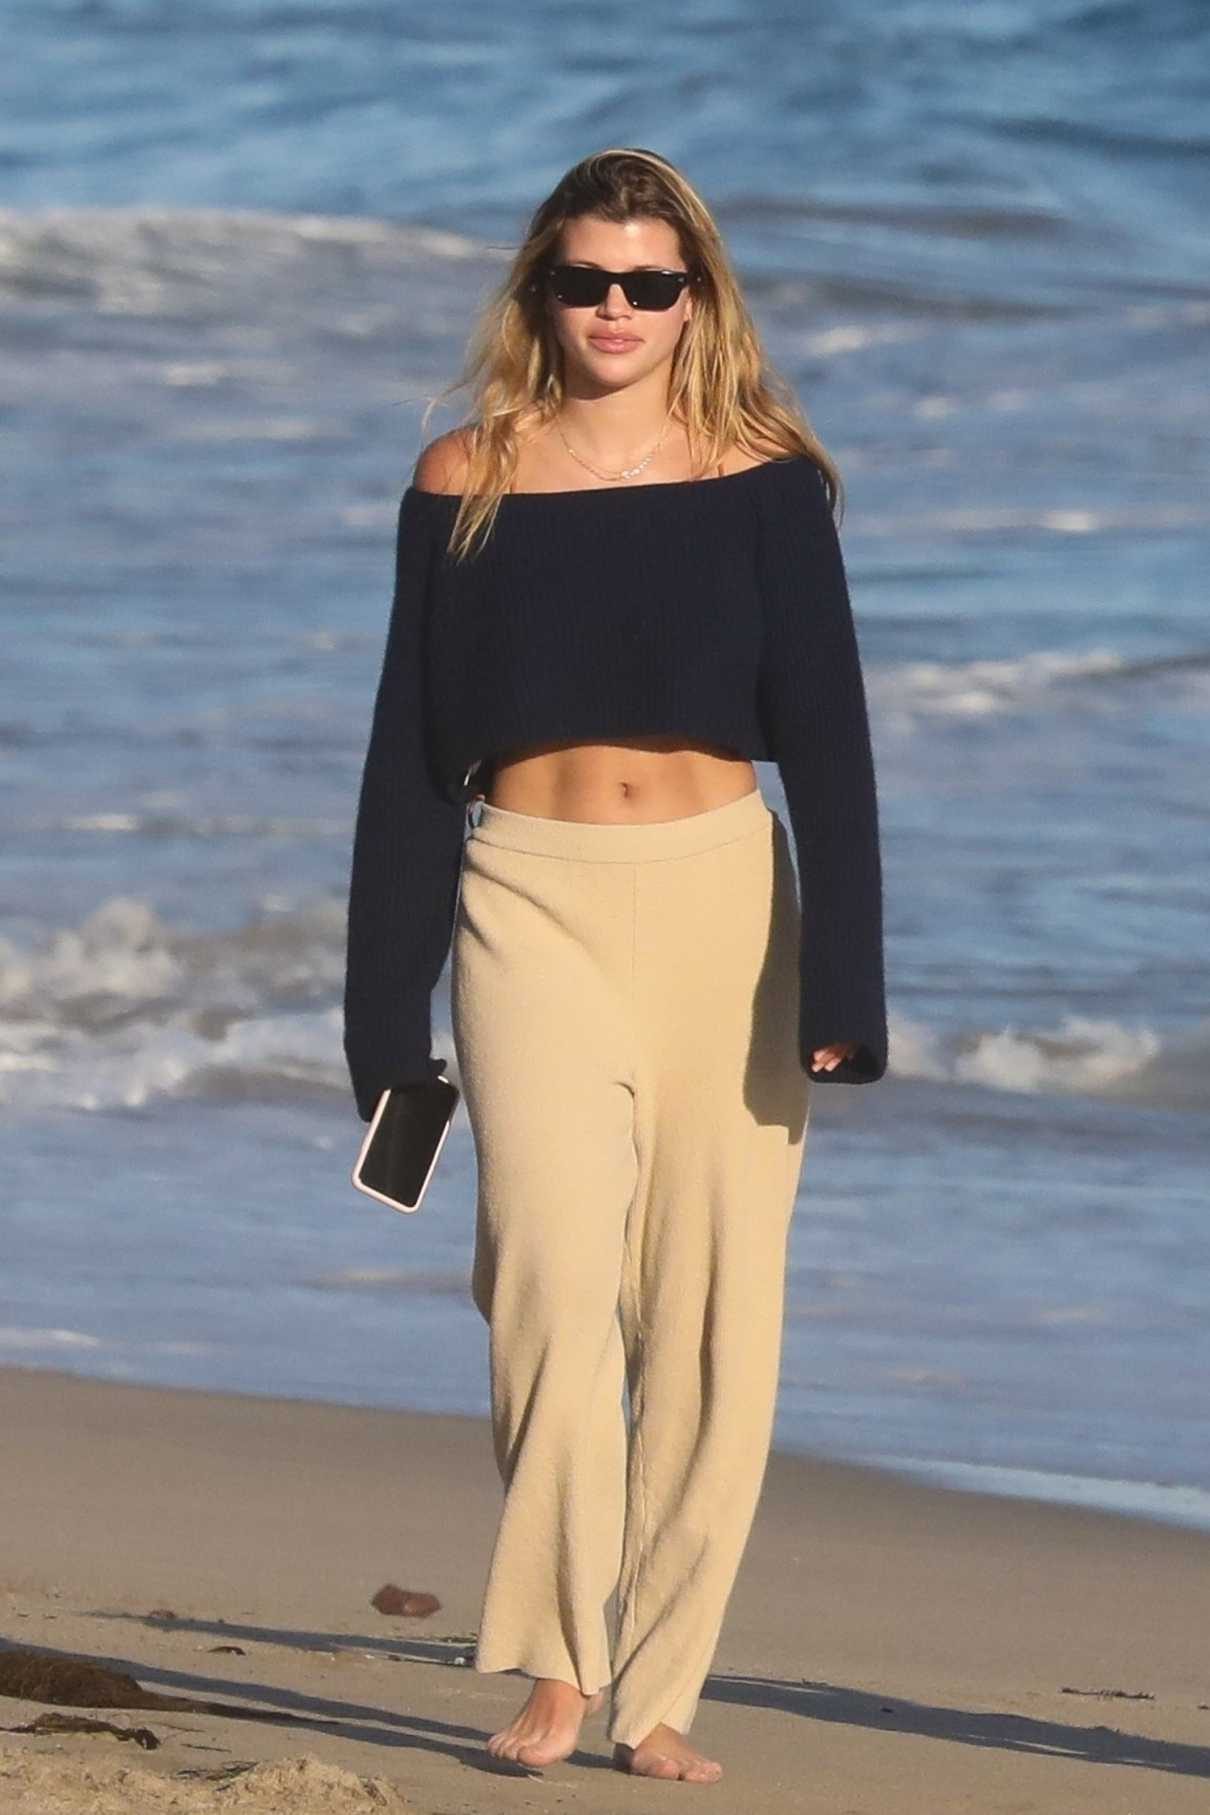 Sofia Richie in a Beige Sweatpants